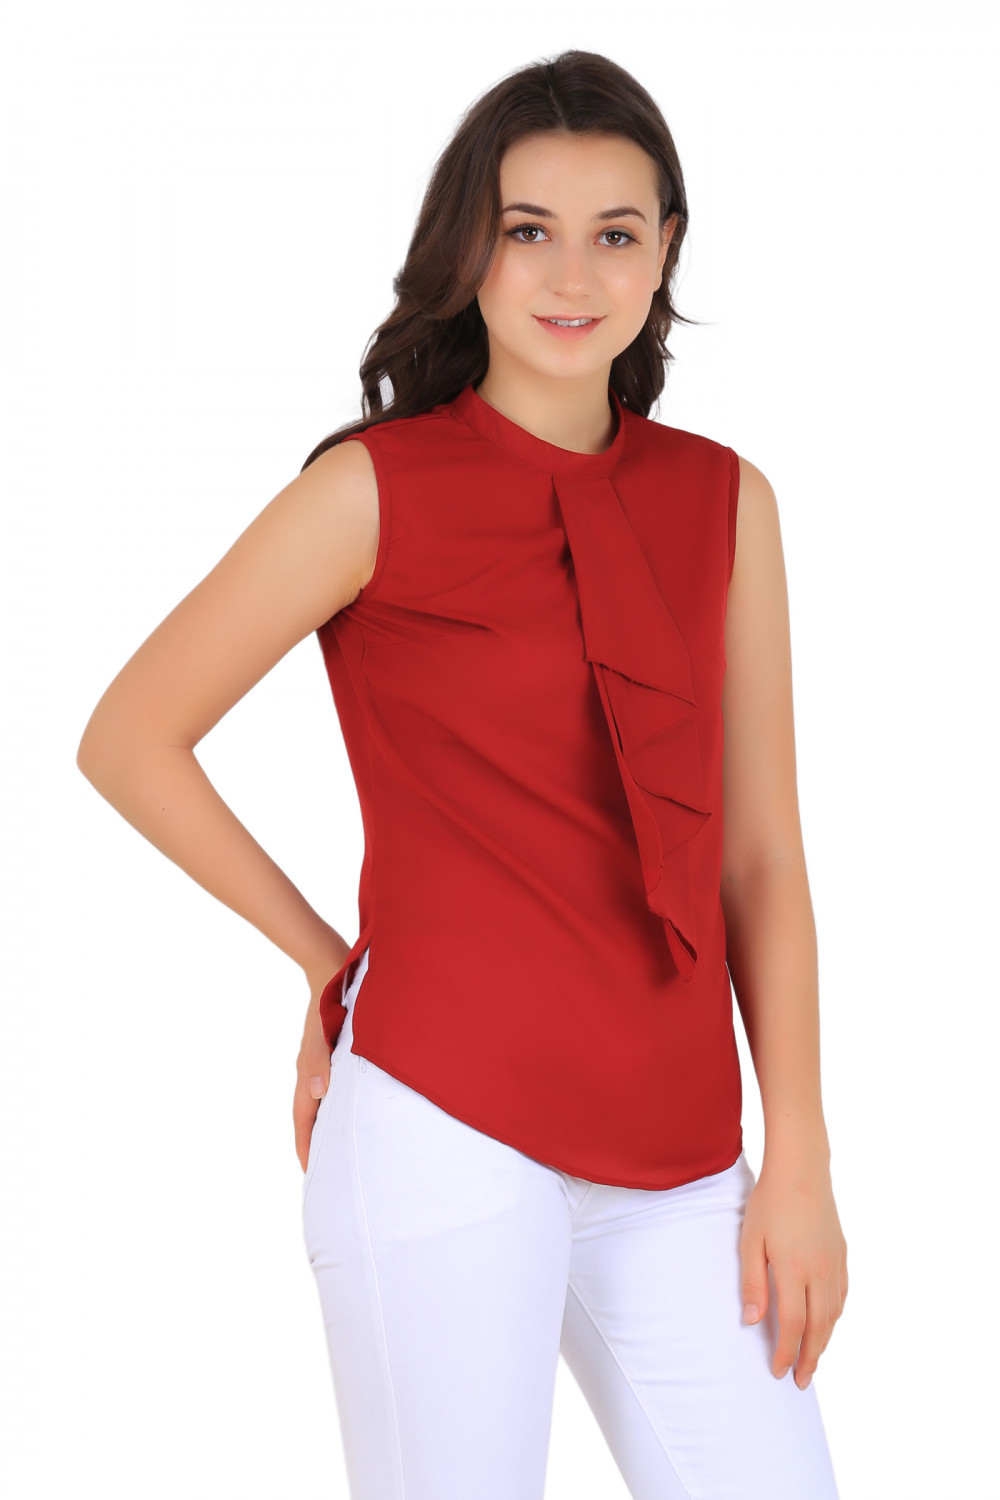 Buy New Fashion Life Style Woman Round Neck Tie Maroon Red Plain Summer Cool Crepe On Solder